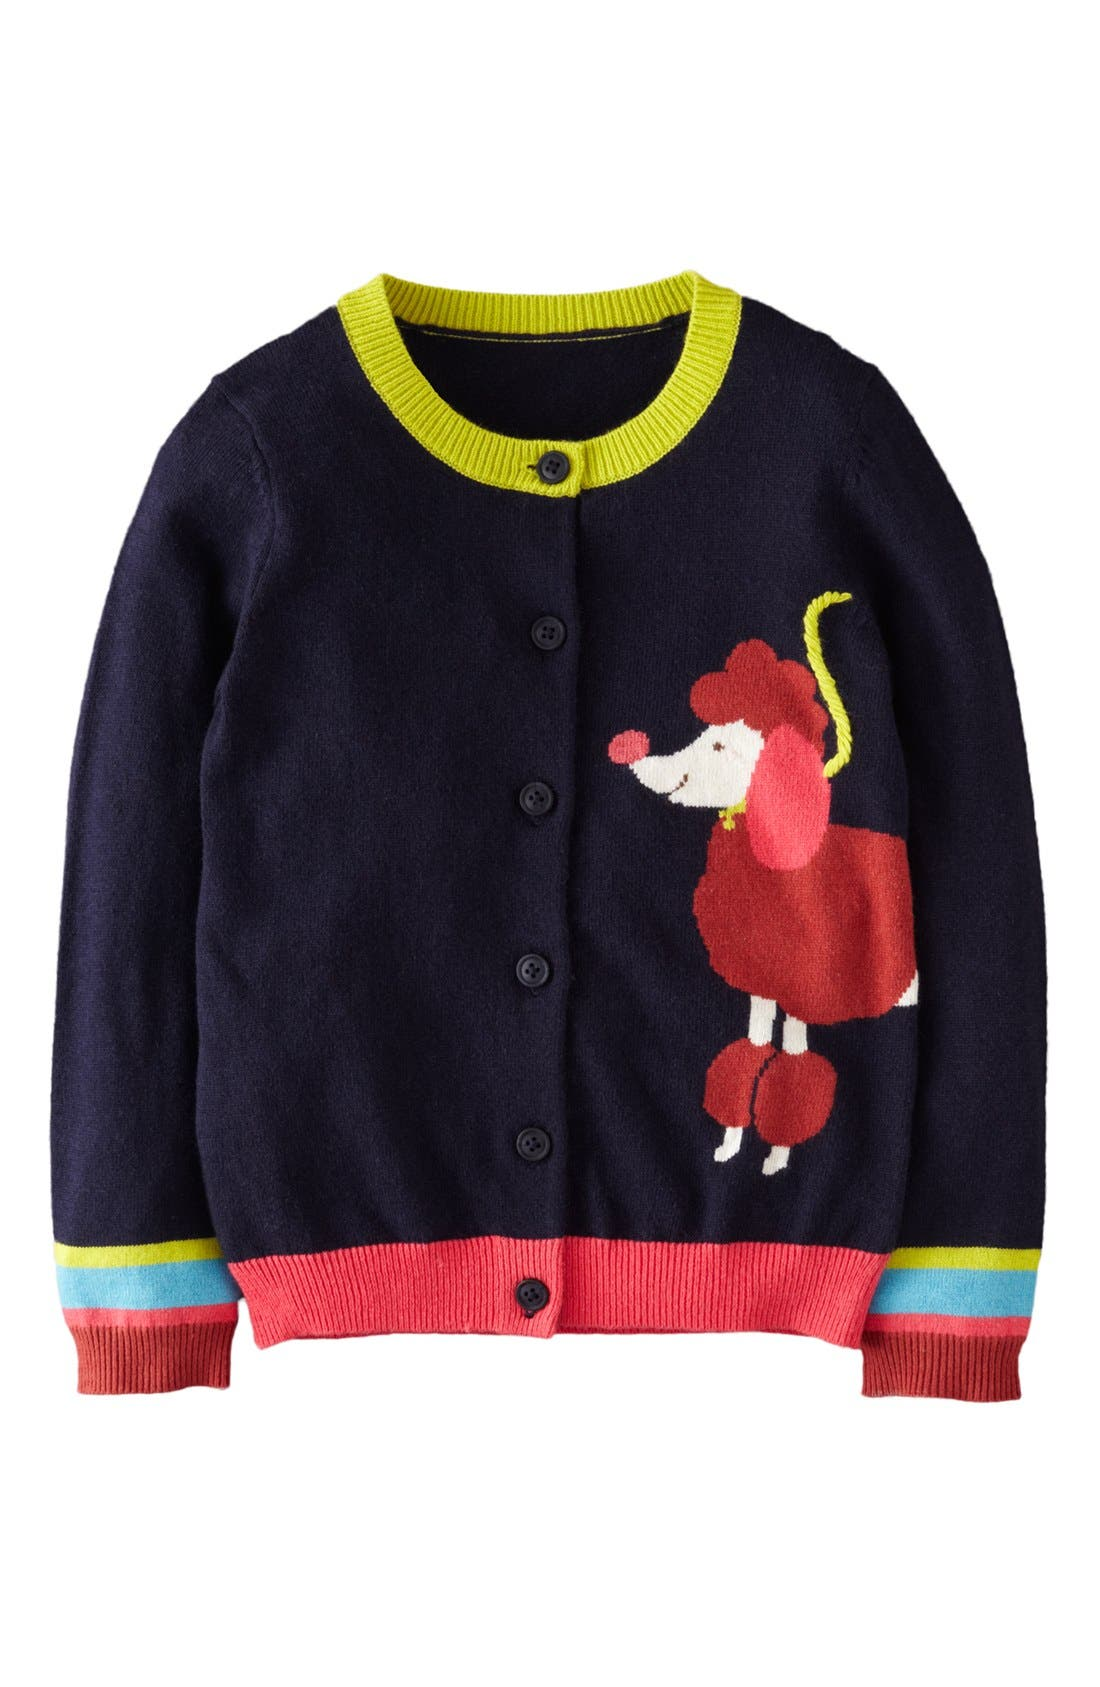 Alternate Image 1 Selected - Mini Boden 'Fun' Cardigan (Toddler Girls)